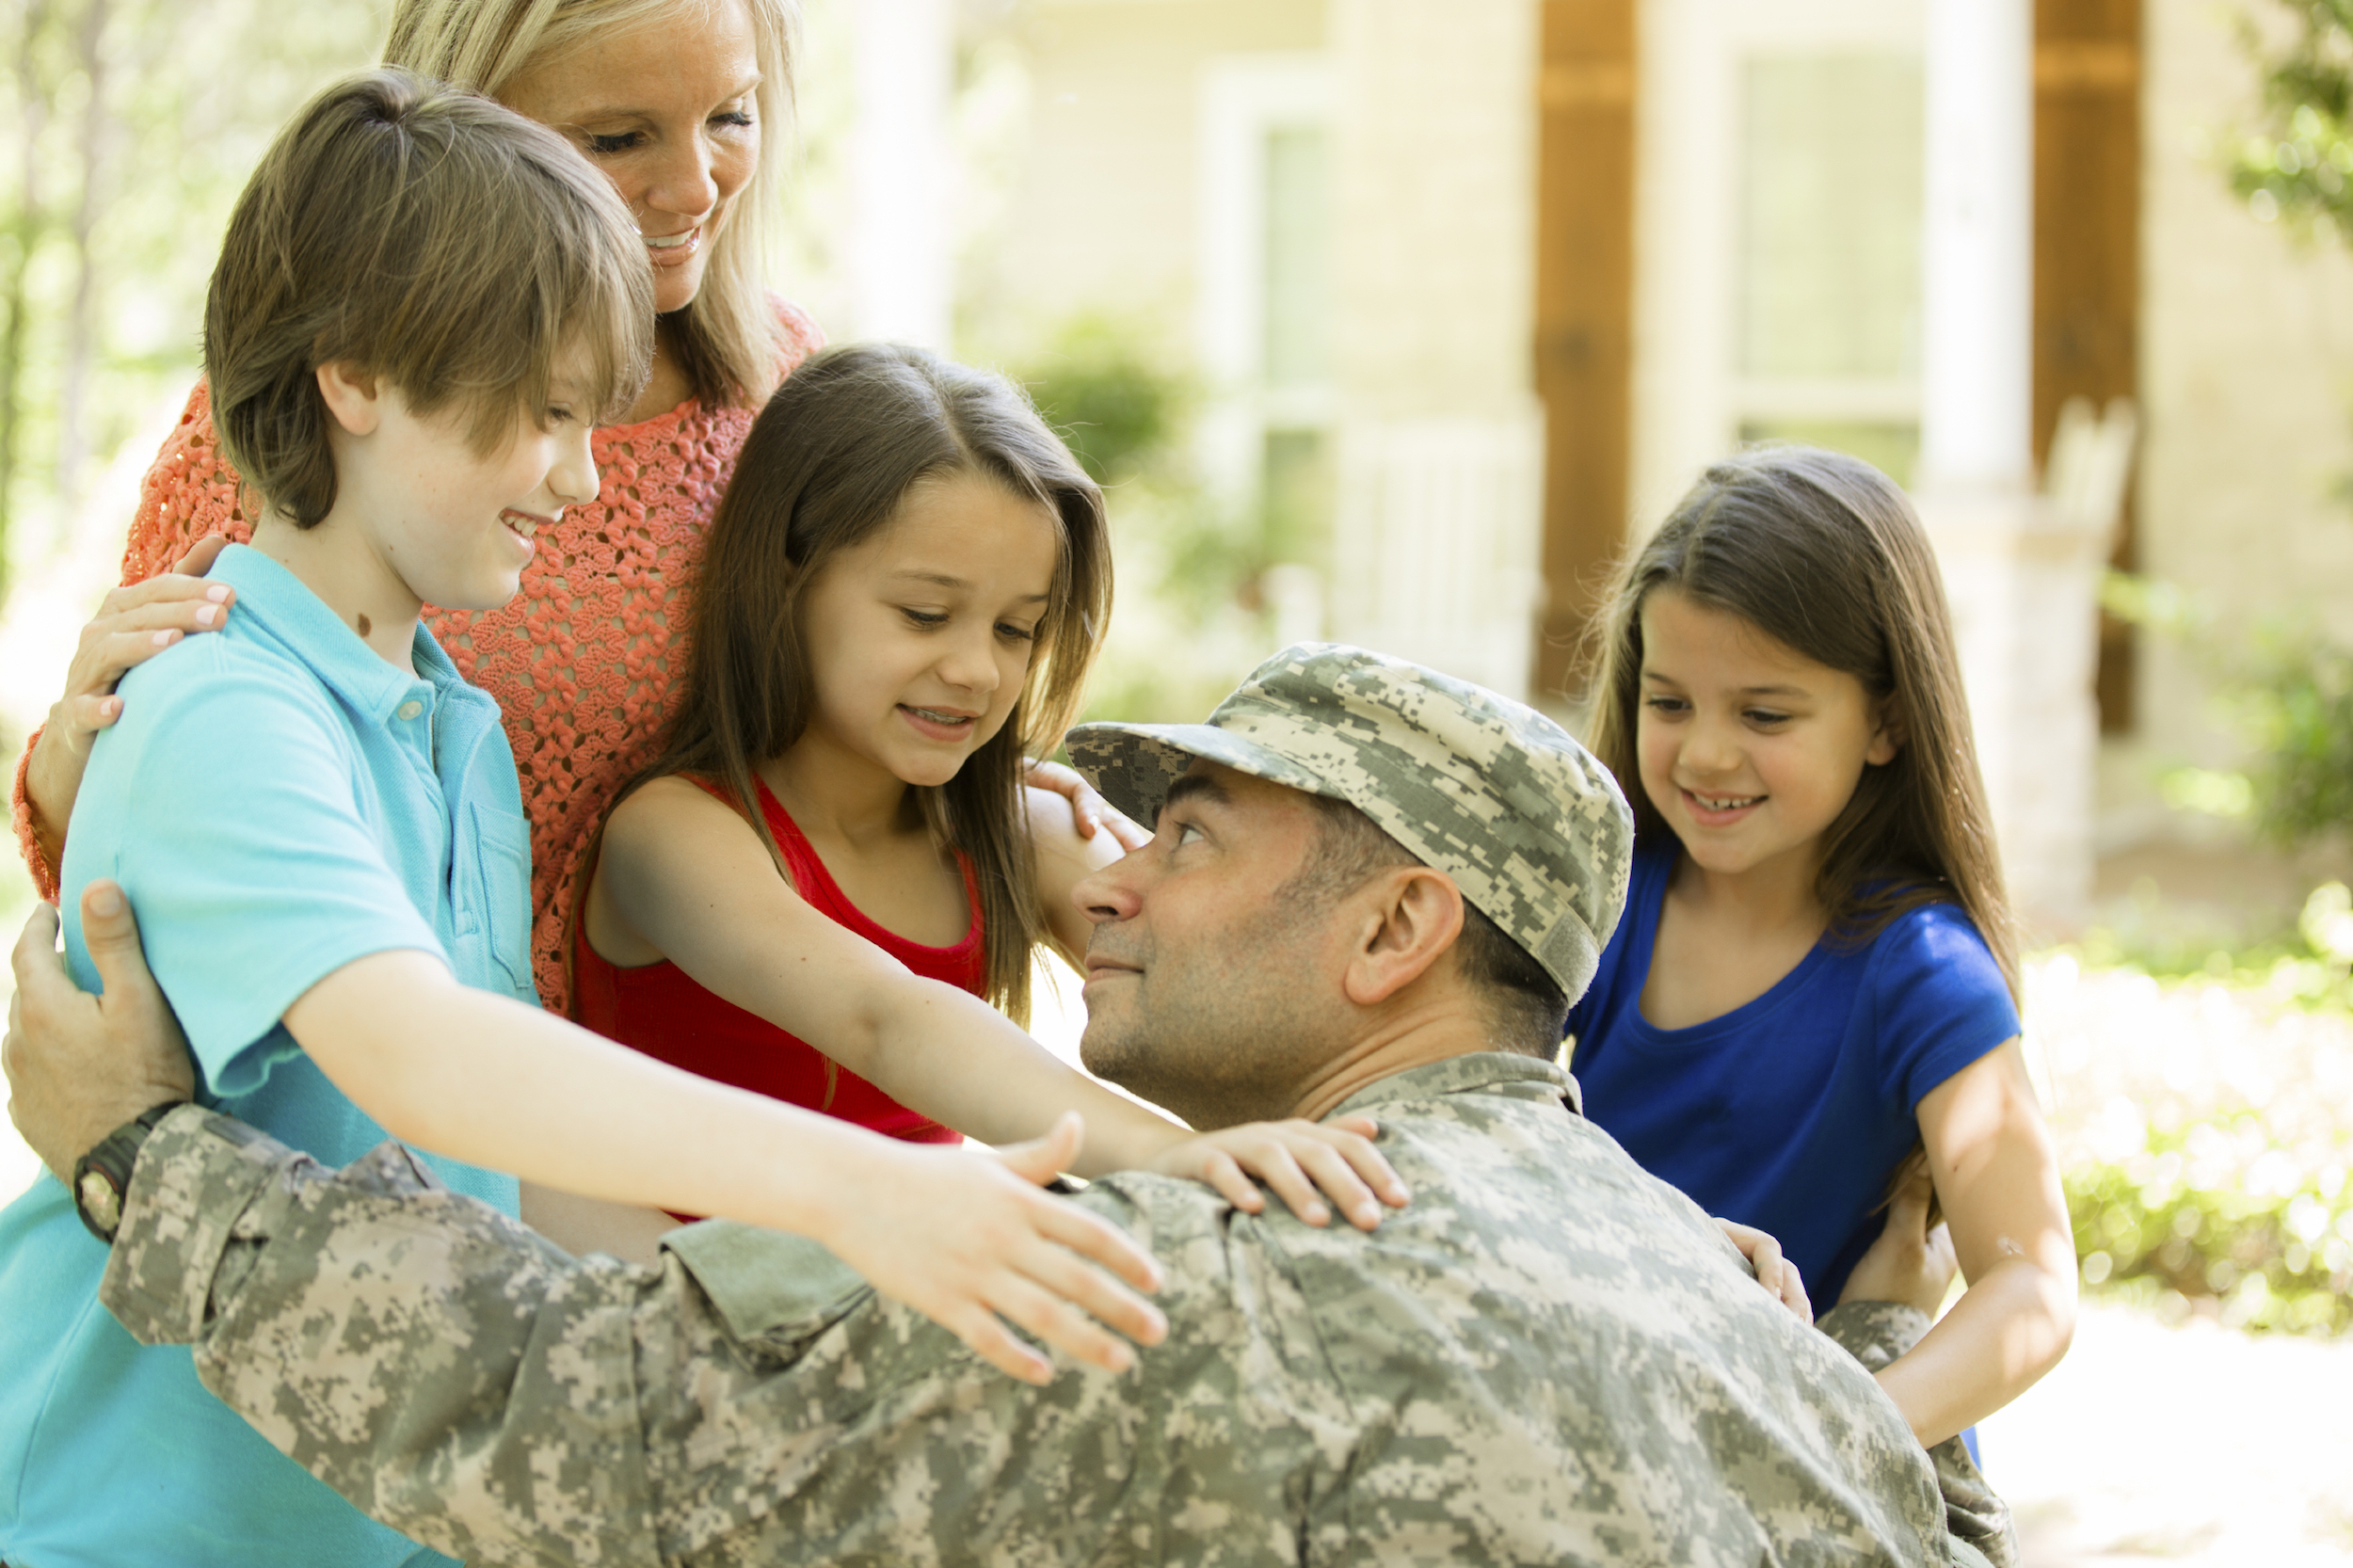 Give - show our nation's heroes that you care and make a direct, lasting impact on their lives.